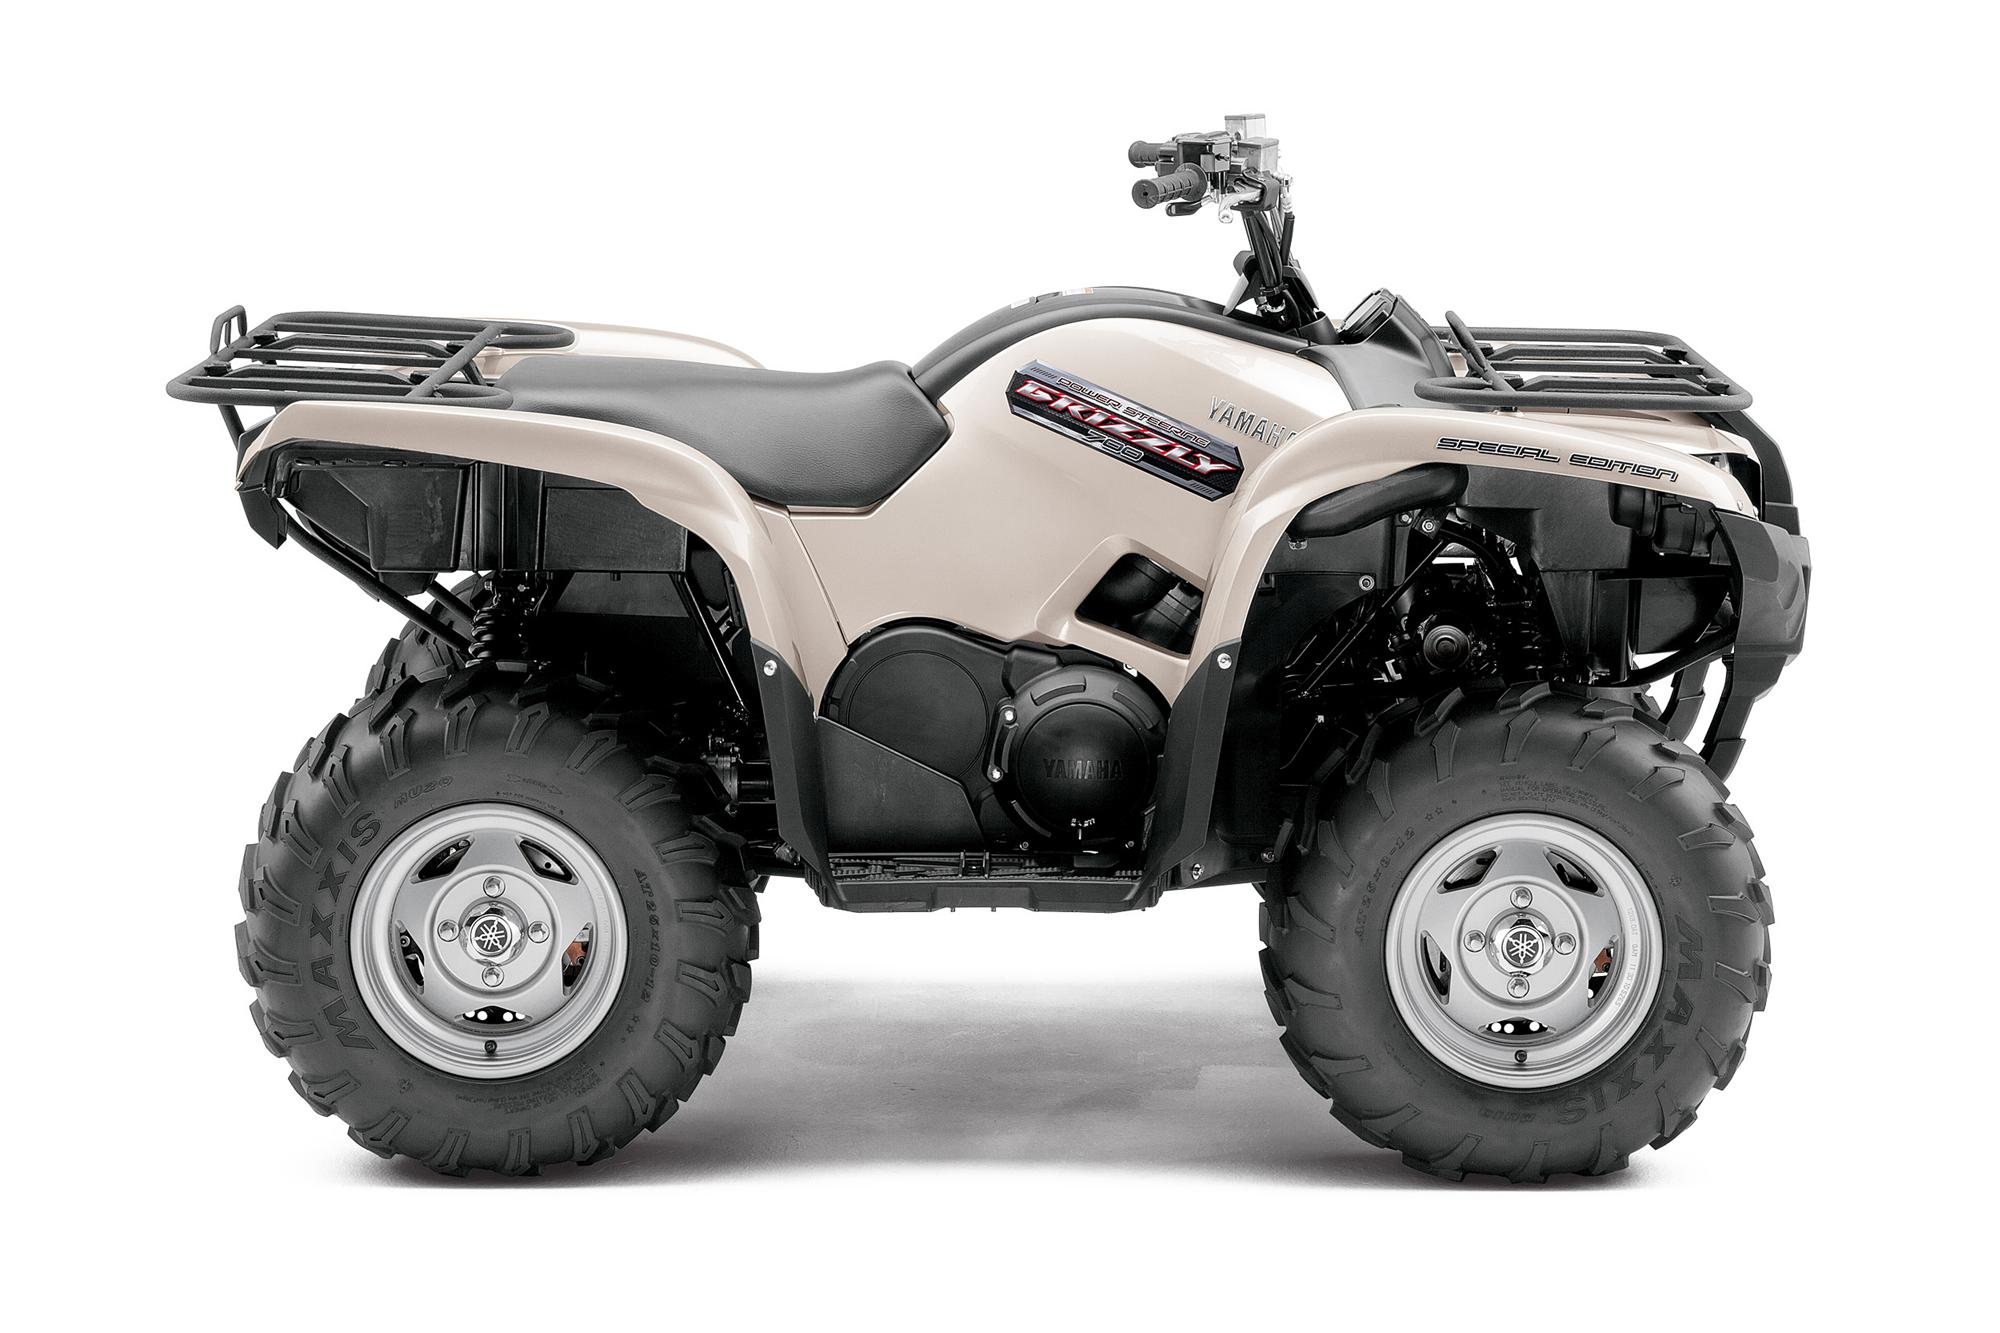 hight resolution of yamaha grizzly 700 fi automatic 4x4 eps special edition 2011 2012